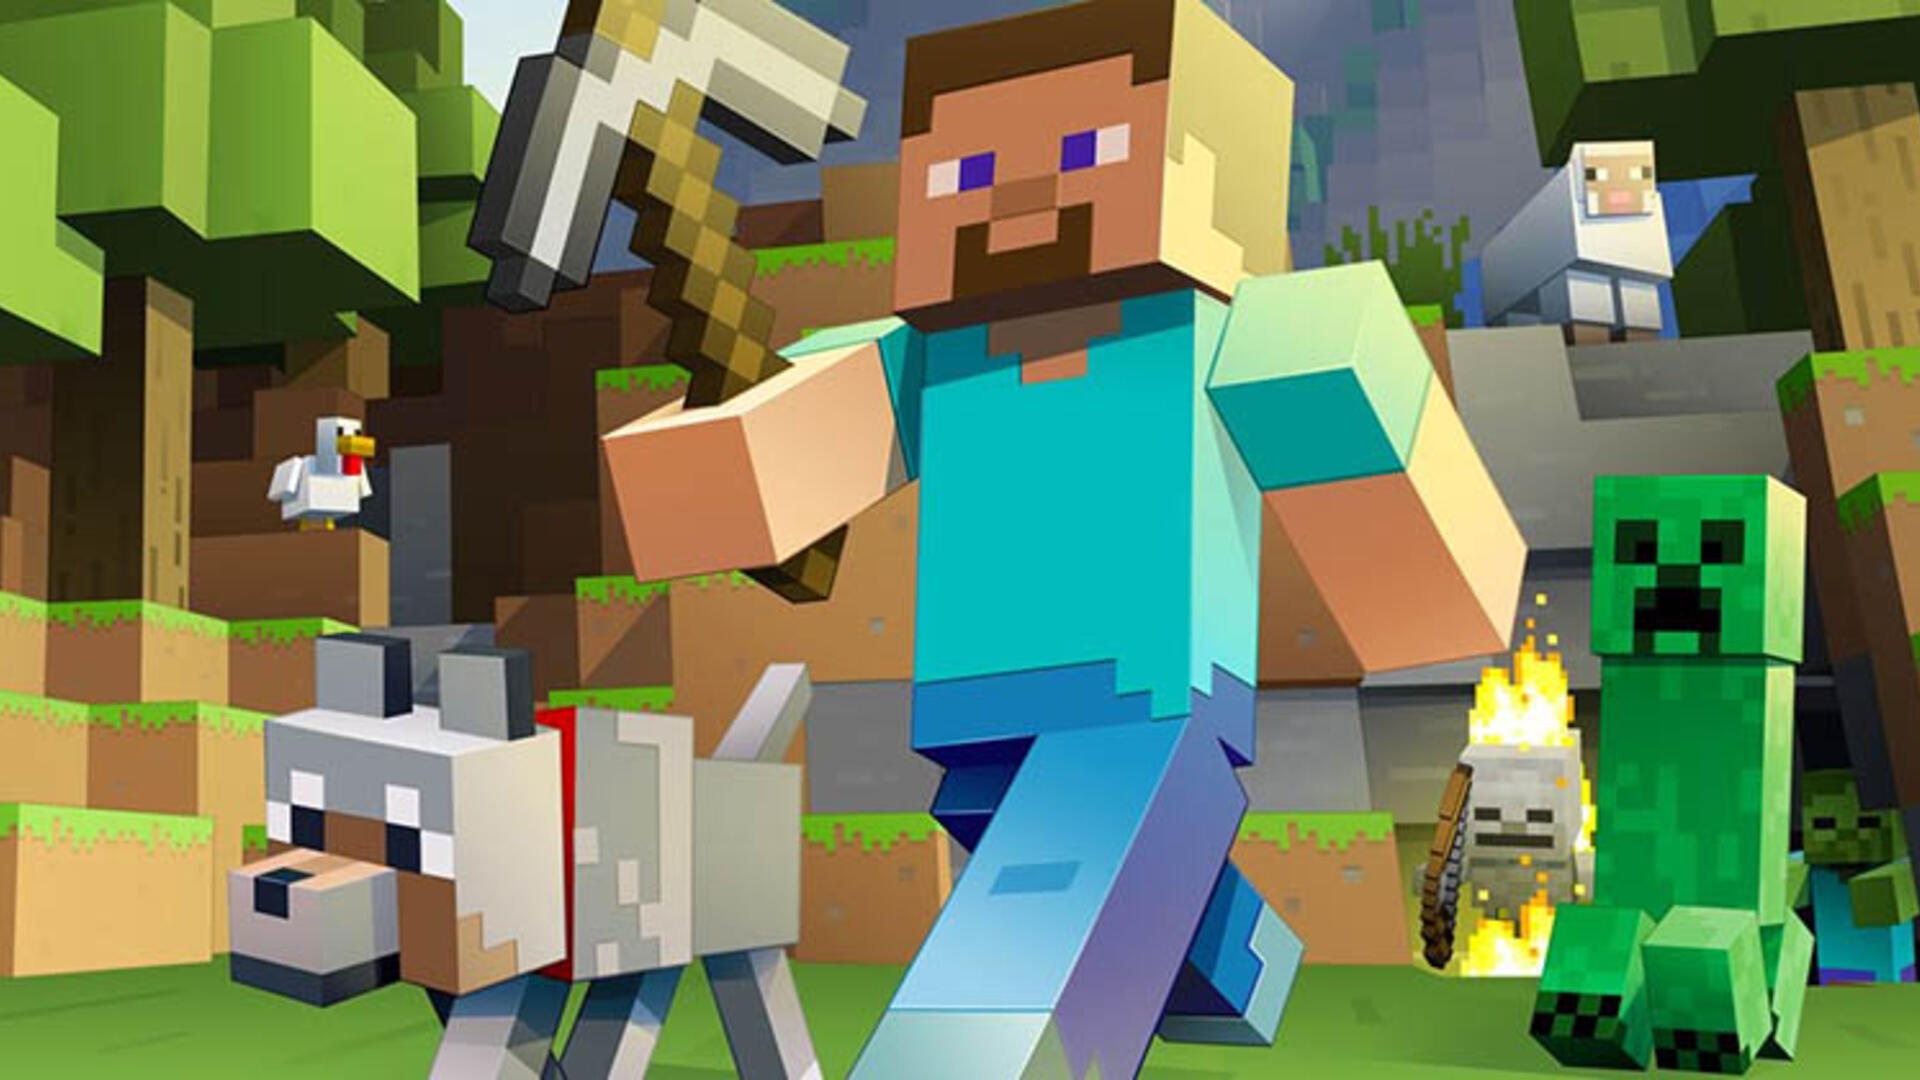 Bedrock Update Transforms Minecraft From a Video Game Into a